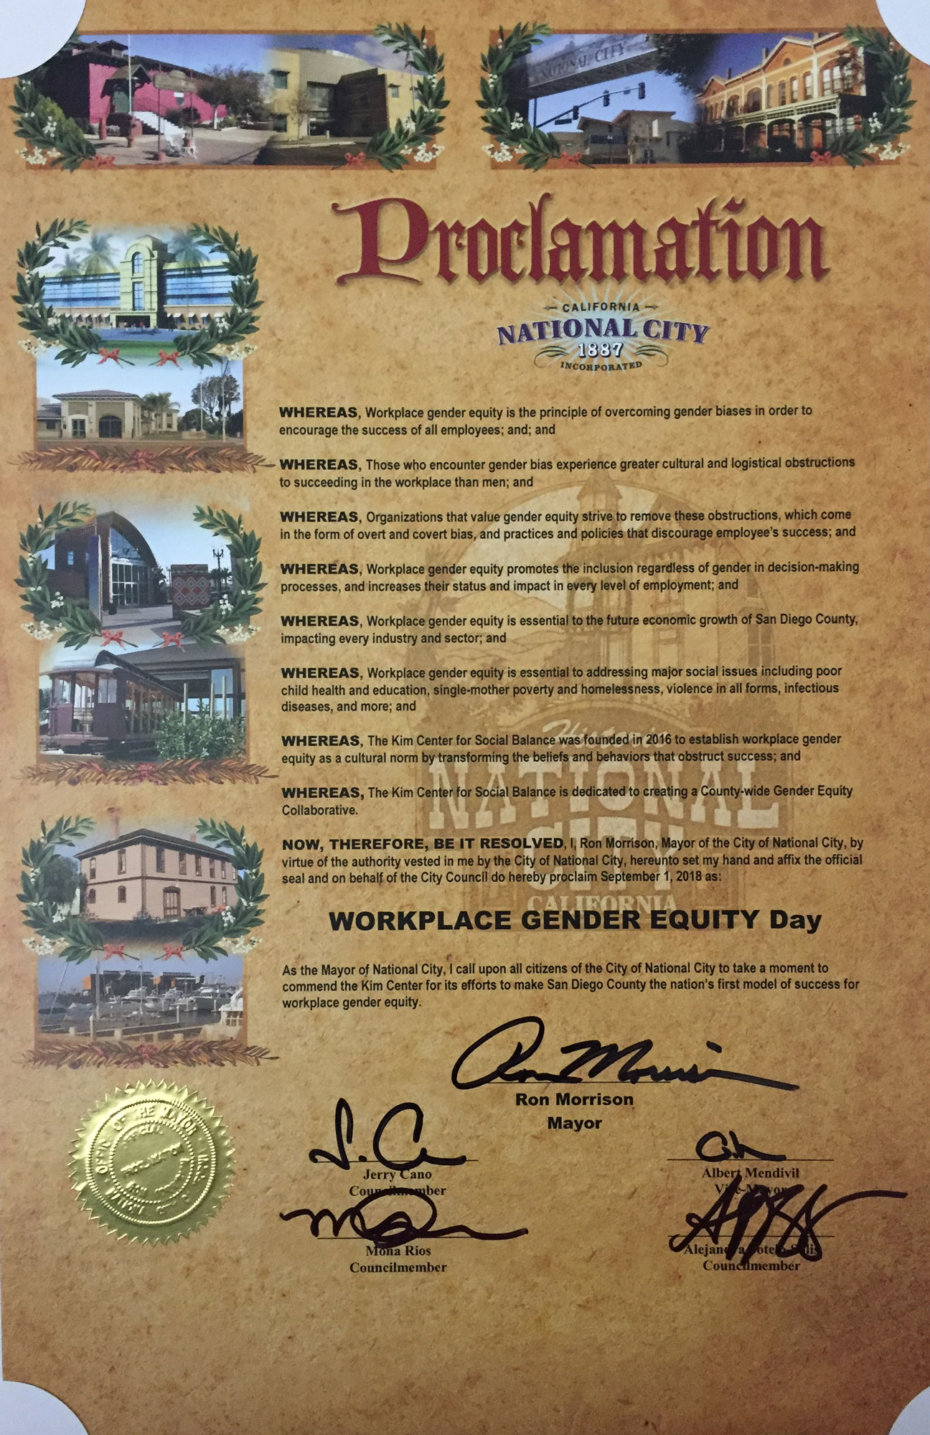 National City Proclamation